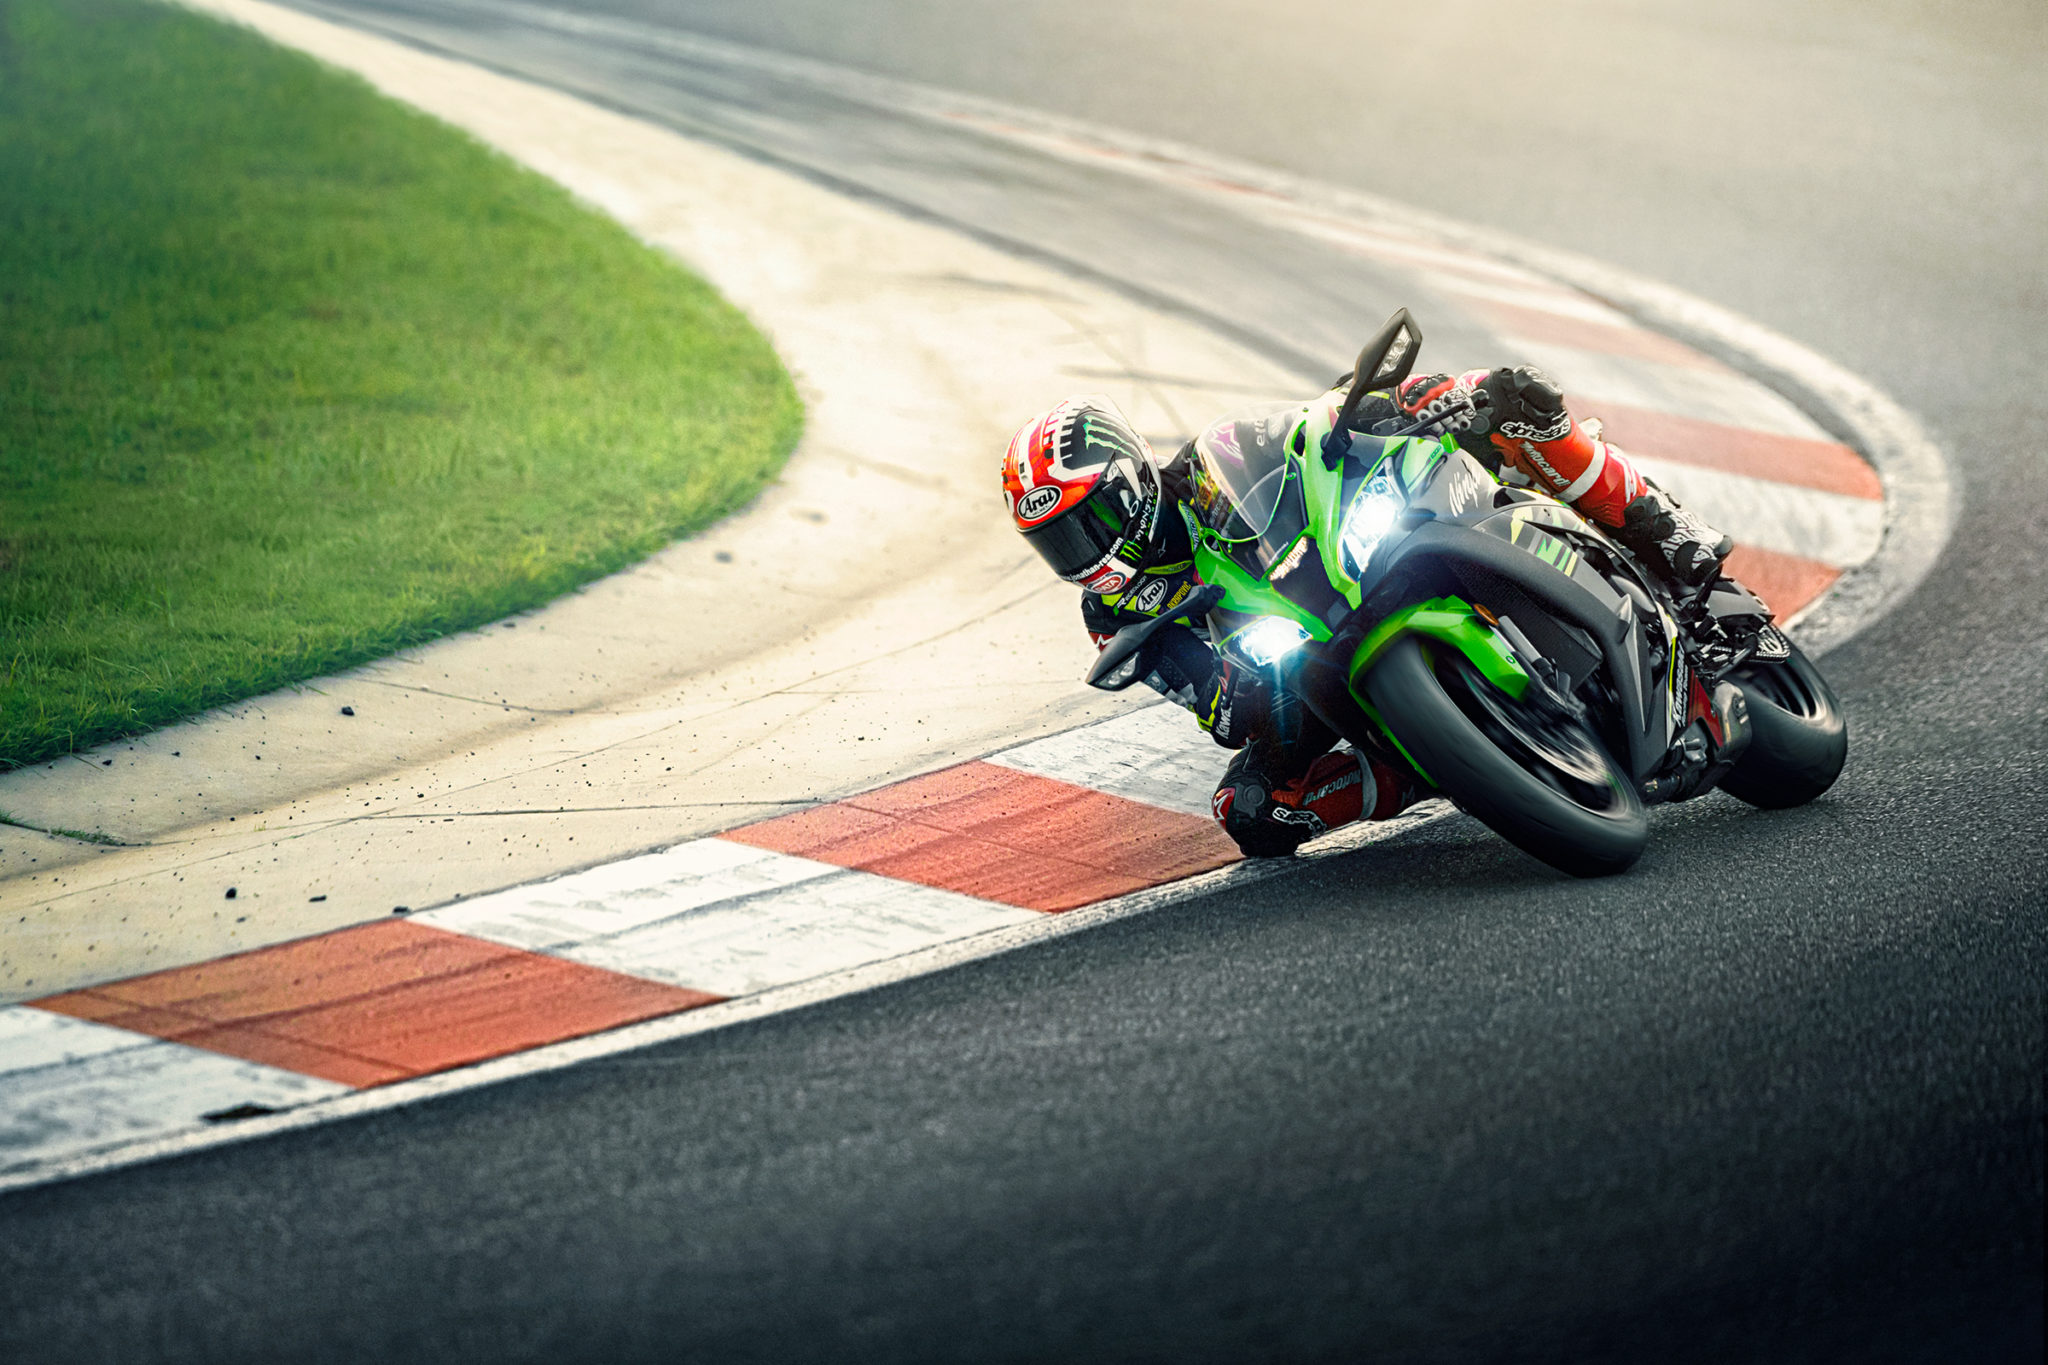 Kawasaki surprises with the new Ninja ZX-10R